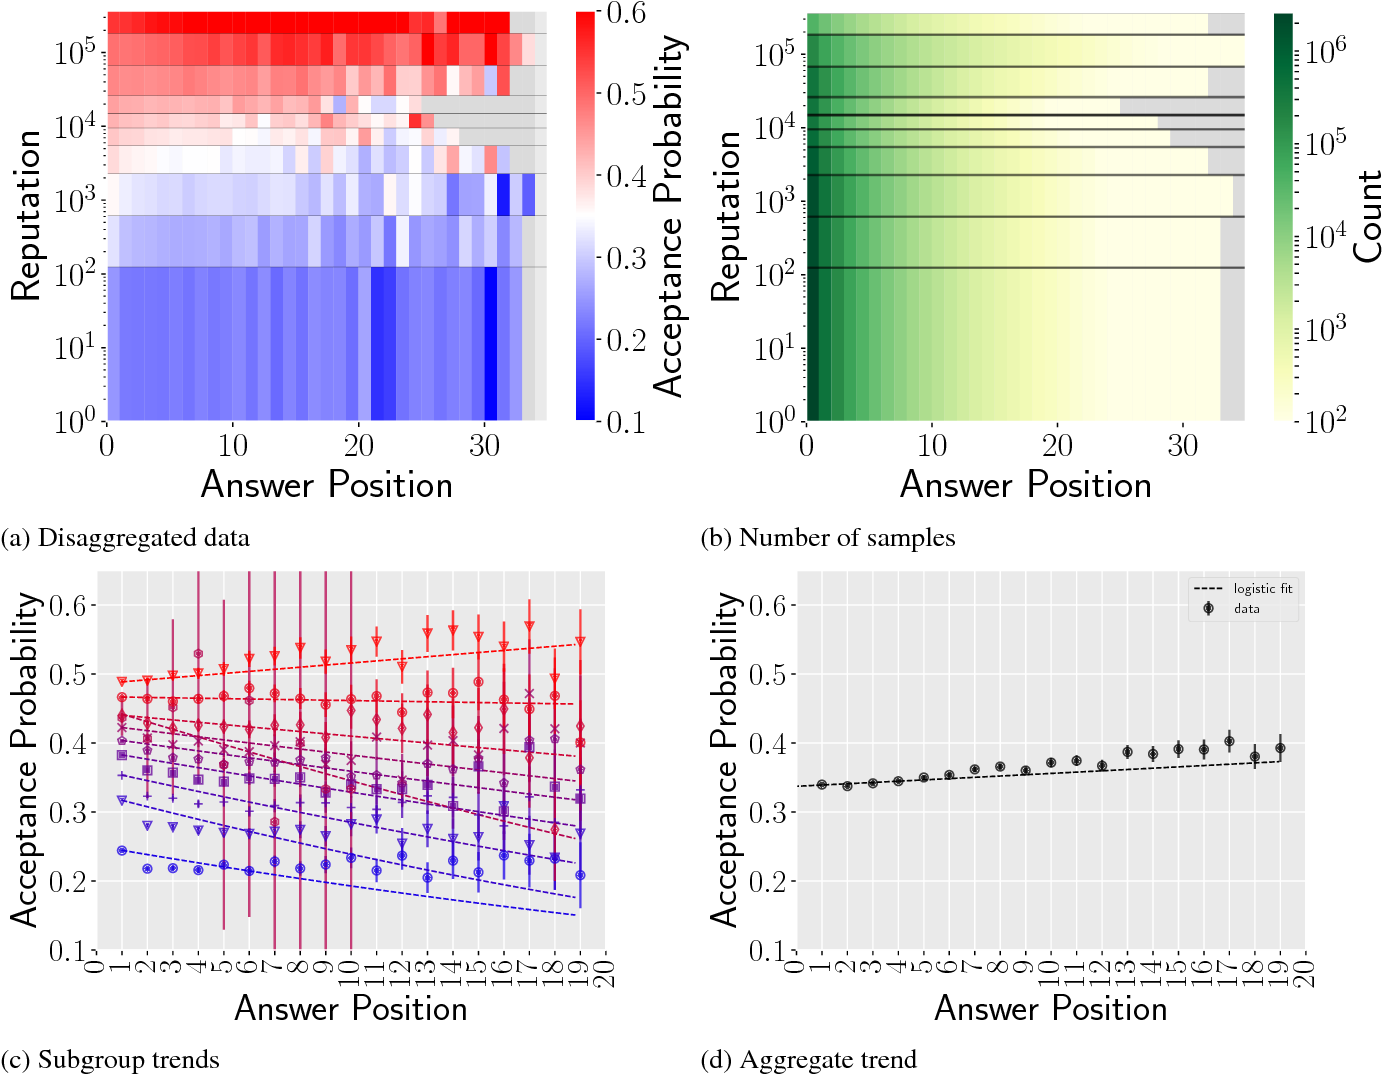 Figure 3 for Using Simpson's Paradox to Discover Interesting Patterns in Behavioral Data